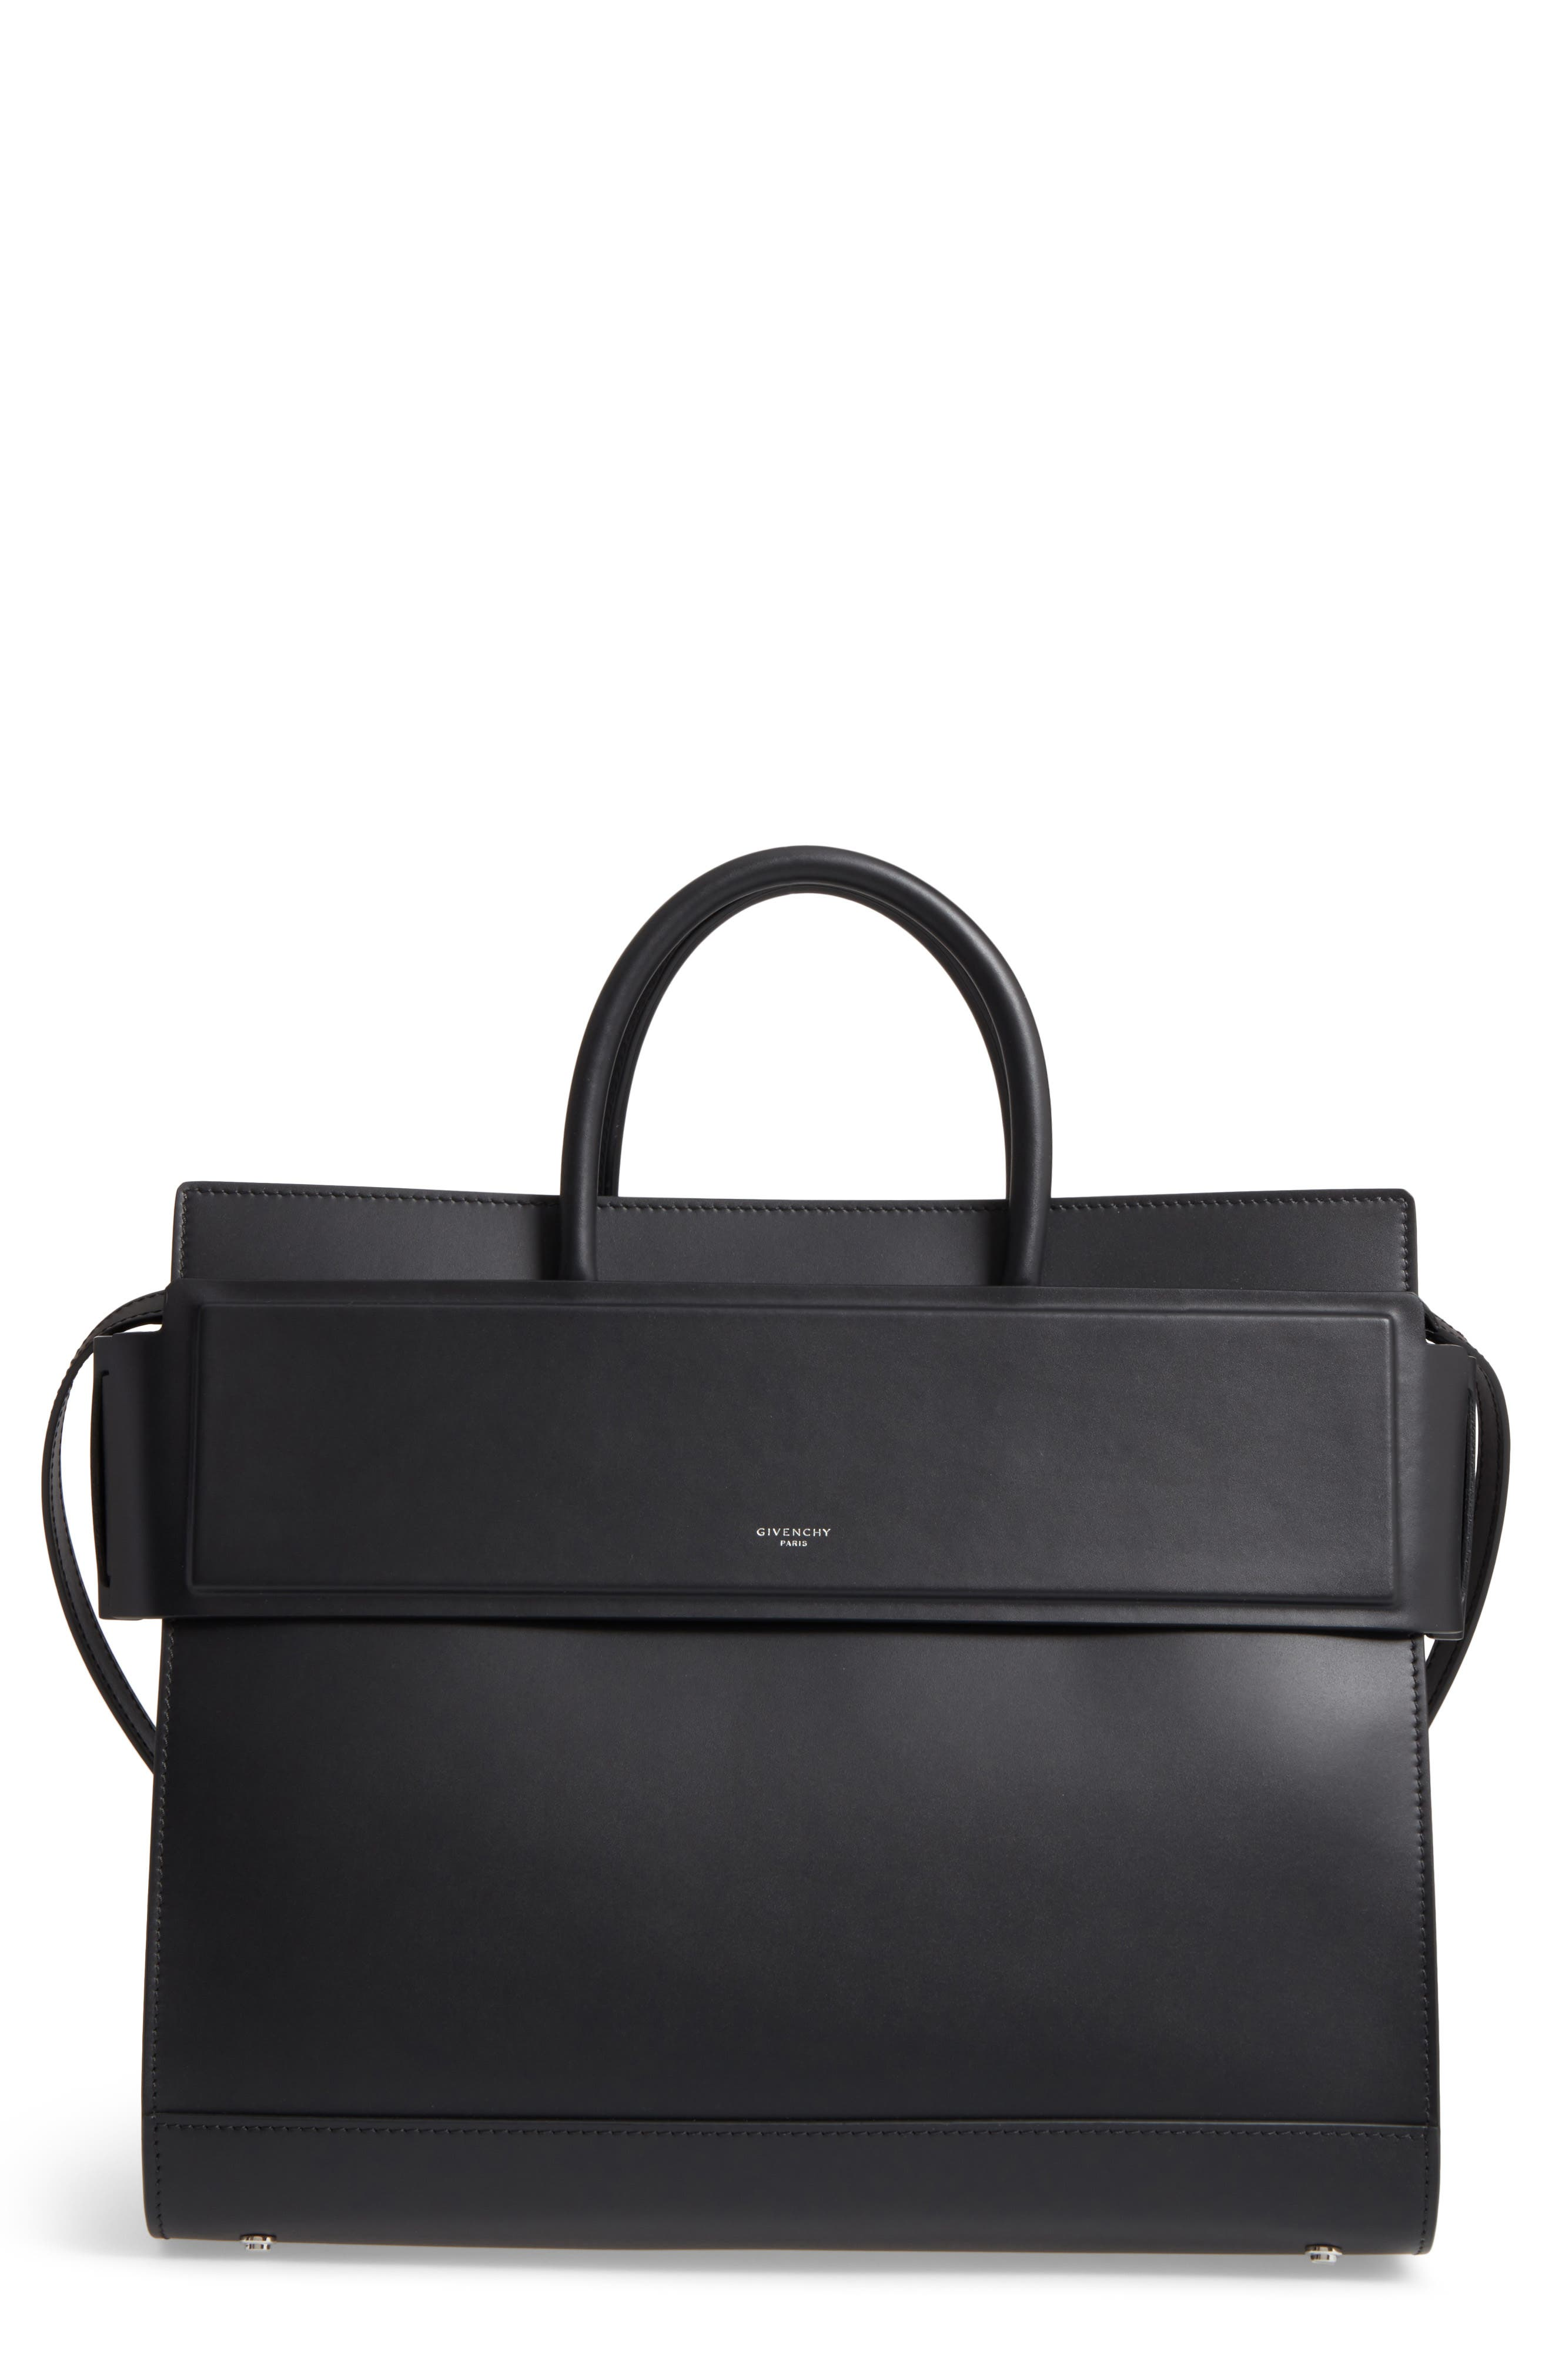 Horizon Calfskin Leather Tote,                             Main thumbnail 1, color,                             BLACK